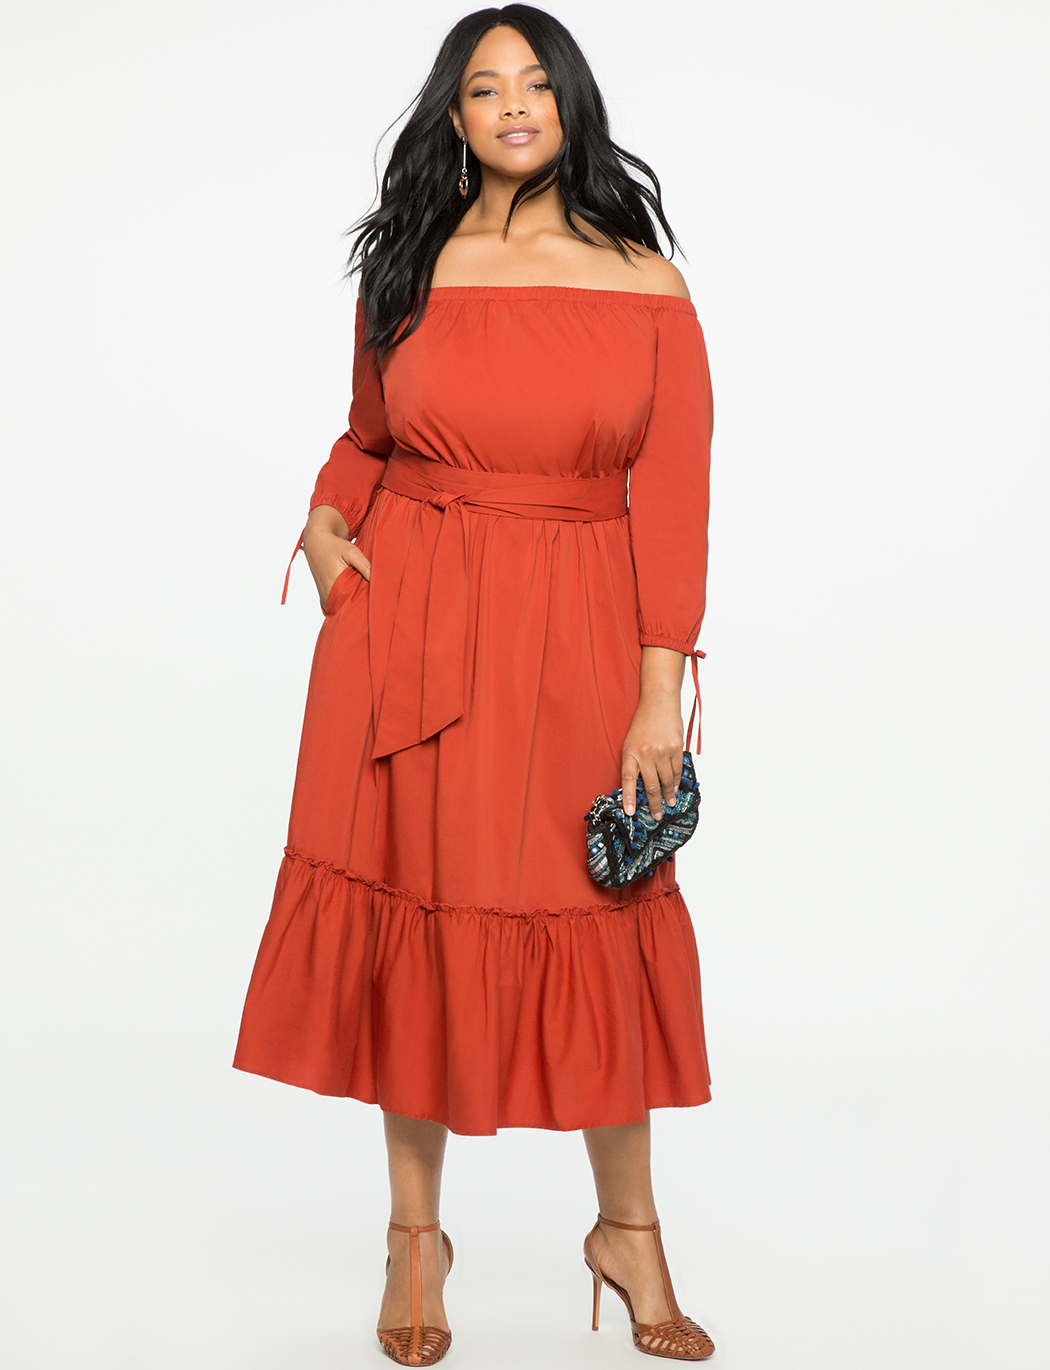 ELOQUII coral off the shoulder plus size dress with flounce detail, product 1243971